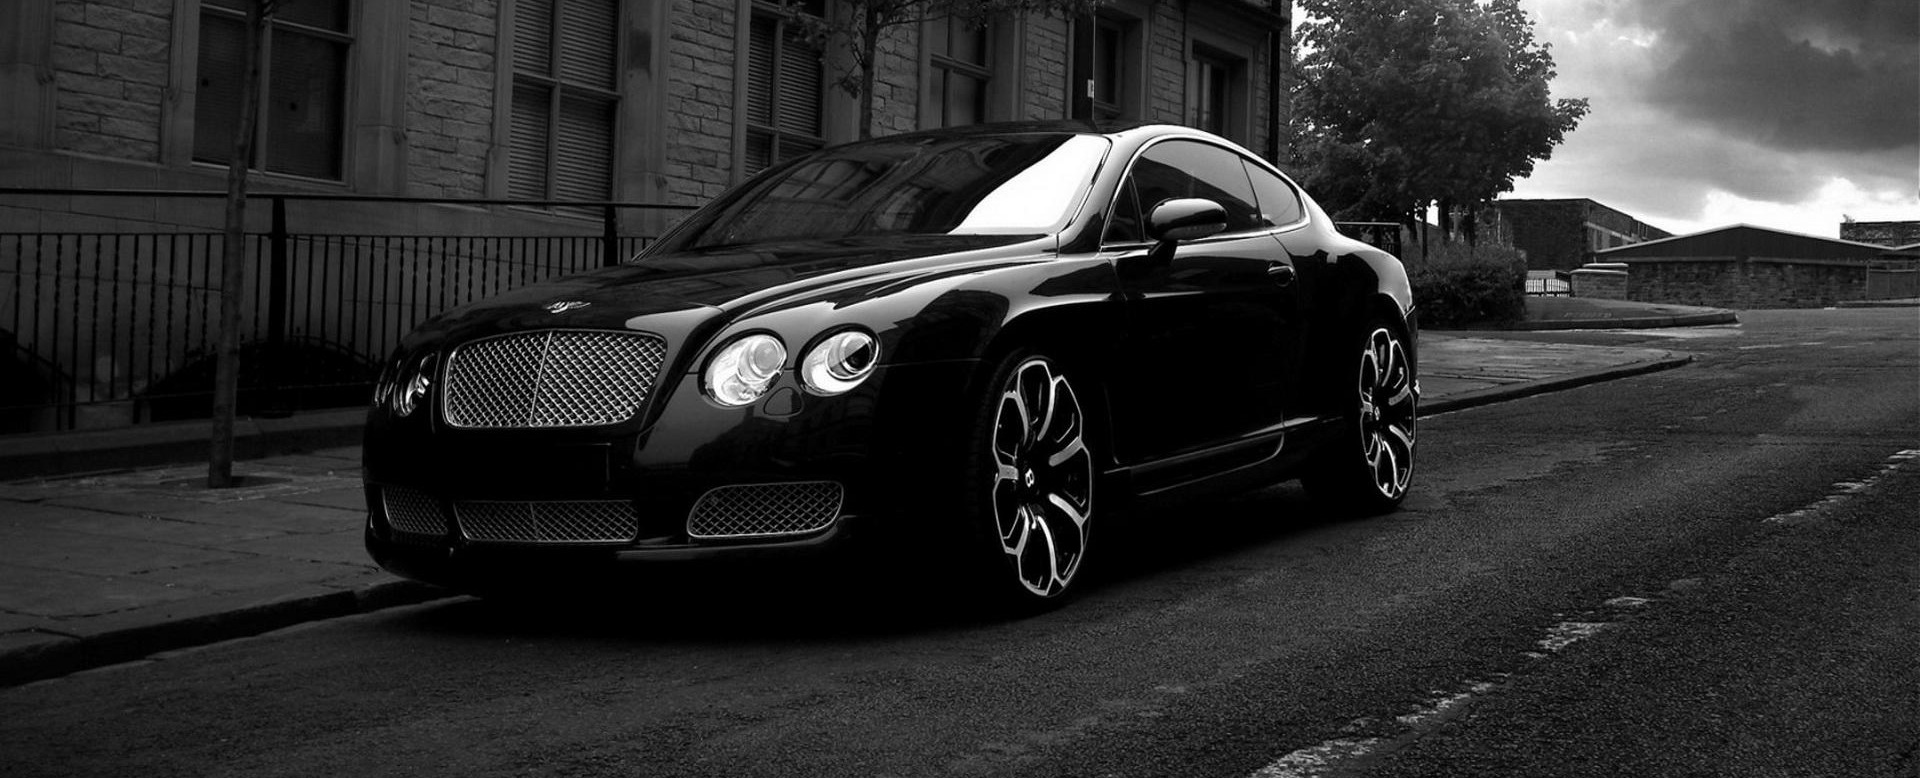 black-bentley-wallpaper11